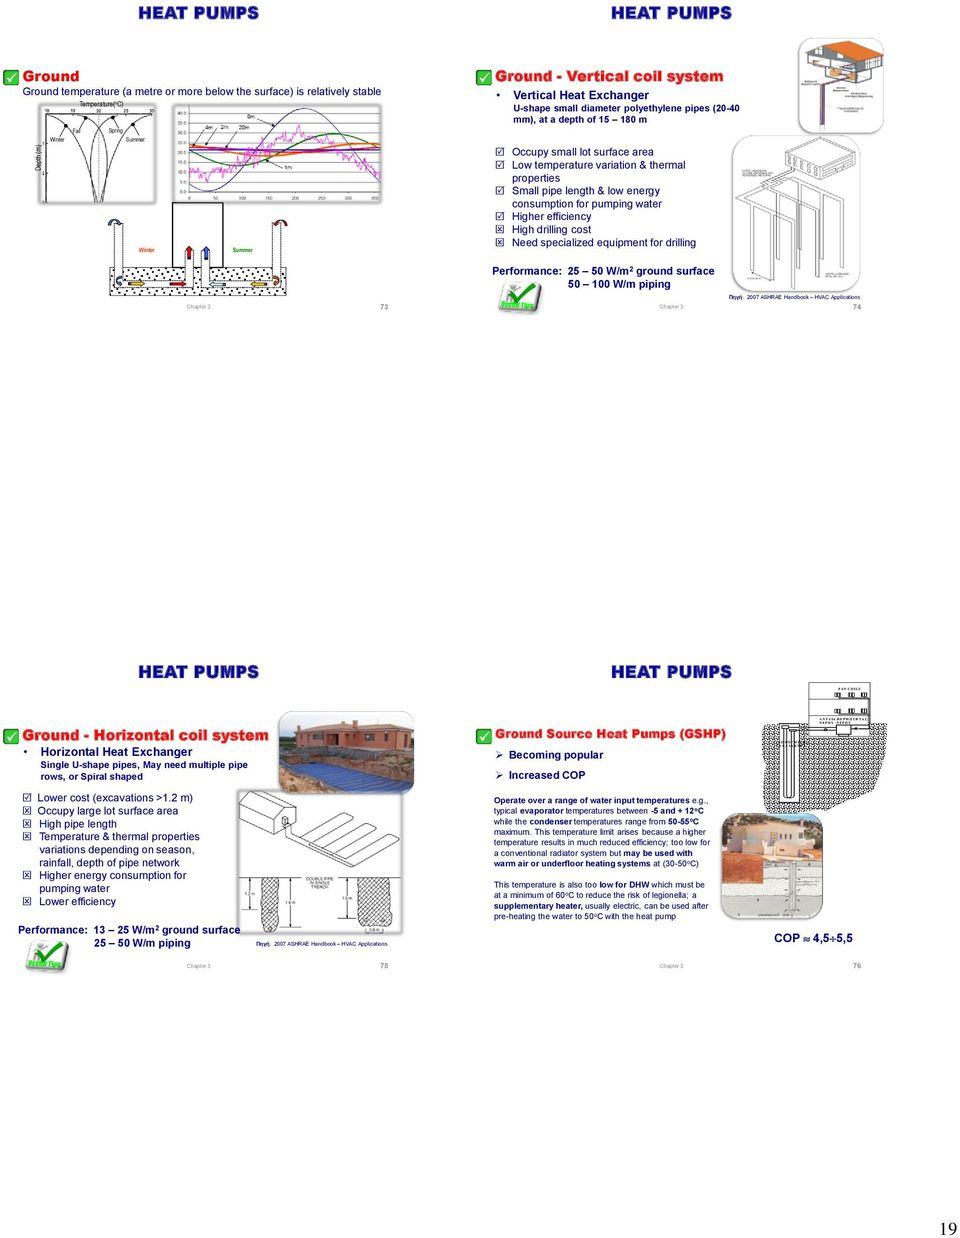 Cibse guide on plumbing ebook plumbing sb answers unit 6 array ch 3 techniques for reducing energy consumption costas a balaras rh docplayer net fandeluxe Image collections